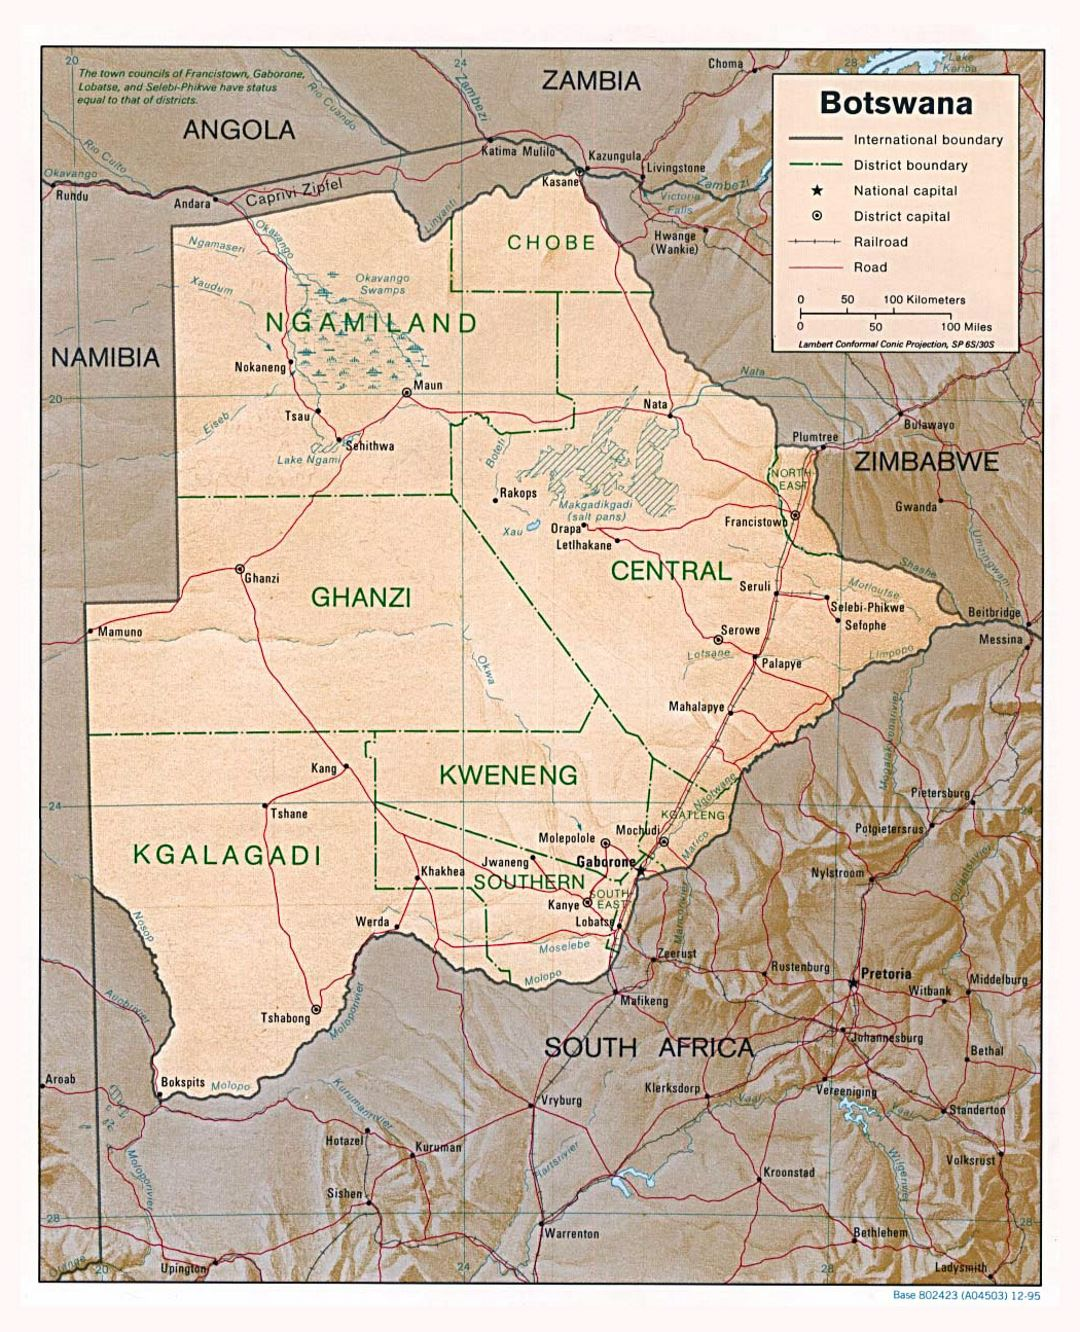 Detailed political and administrative map of Botswana with relief, roads and major cities - 1995